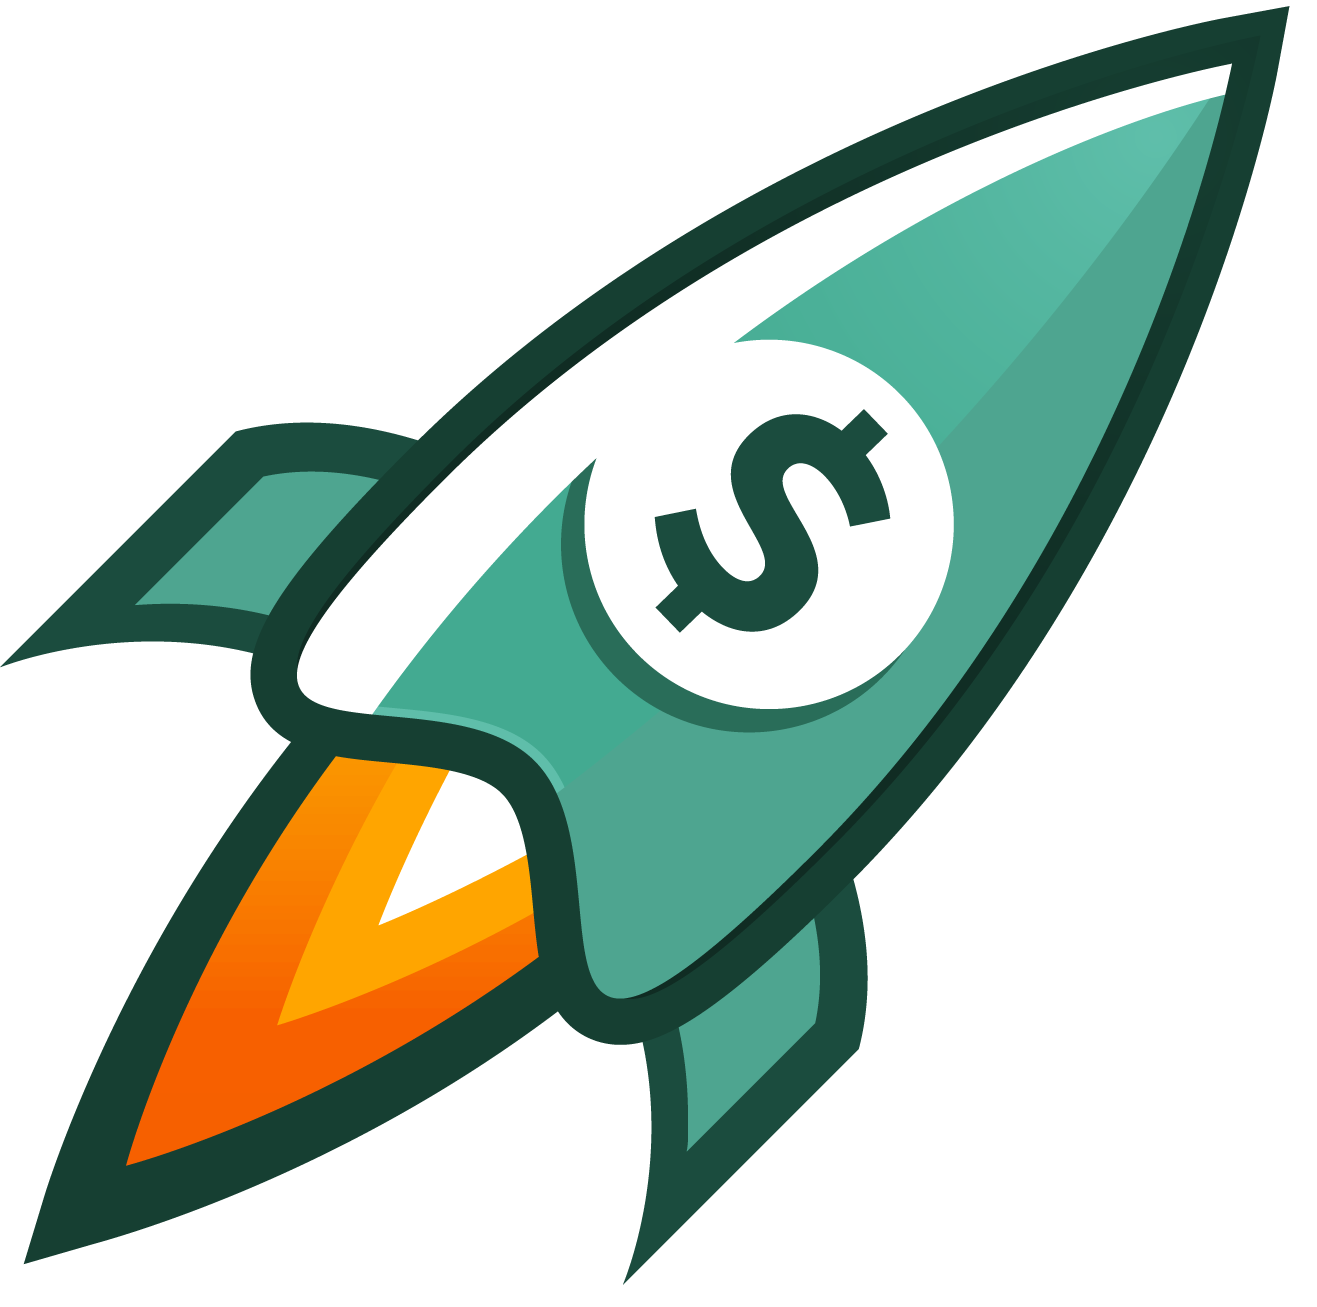 Rocketr.png